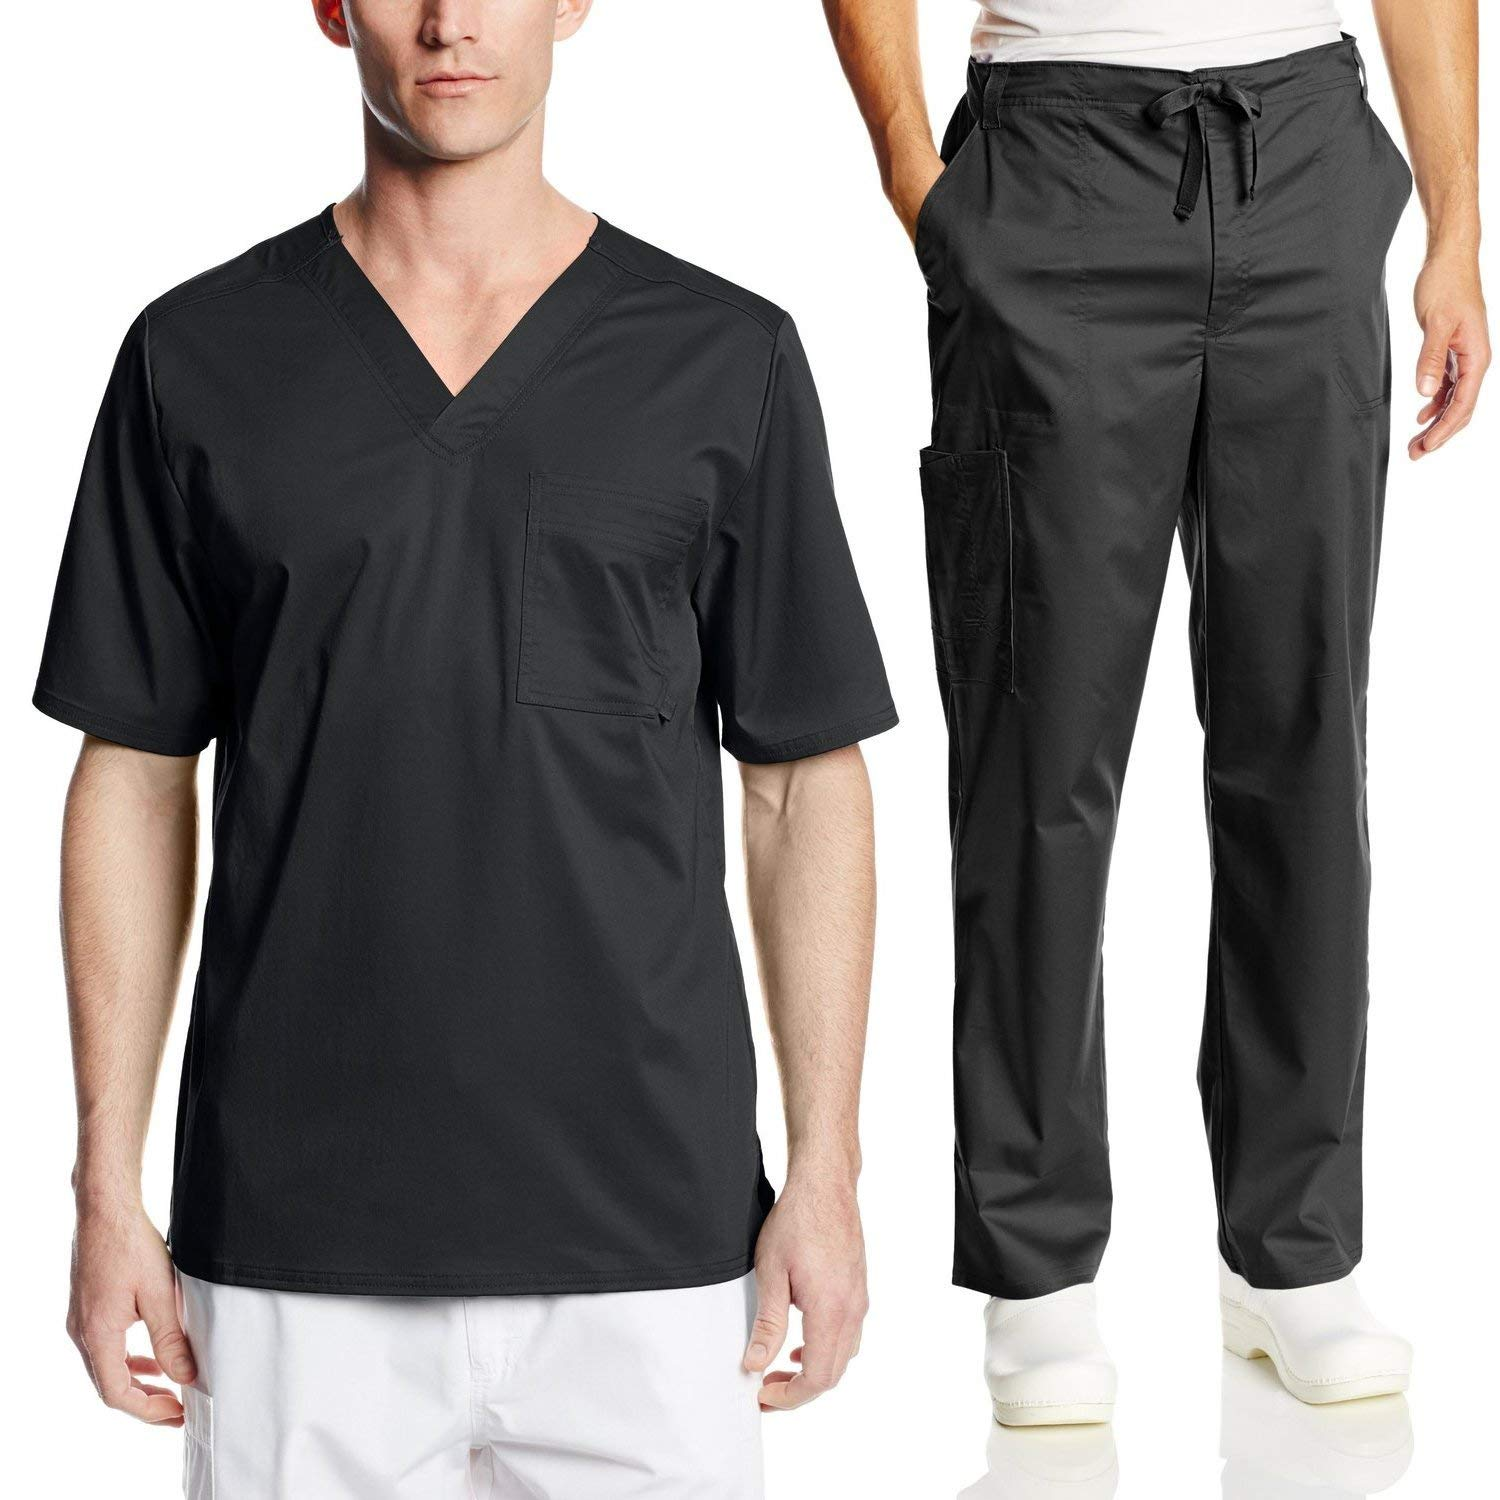 a6499622140 Get Quotations · Cherokee Mens Luxe Scrub Set Medical/Dentist Uniform V-Neck  Top, Drawstring Pant